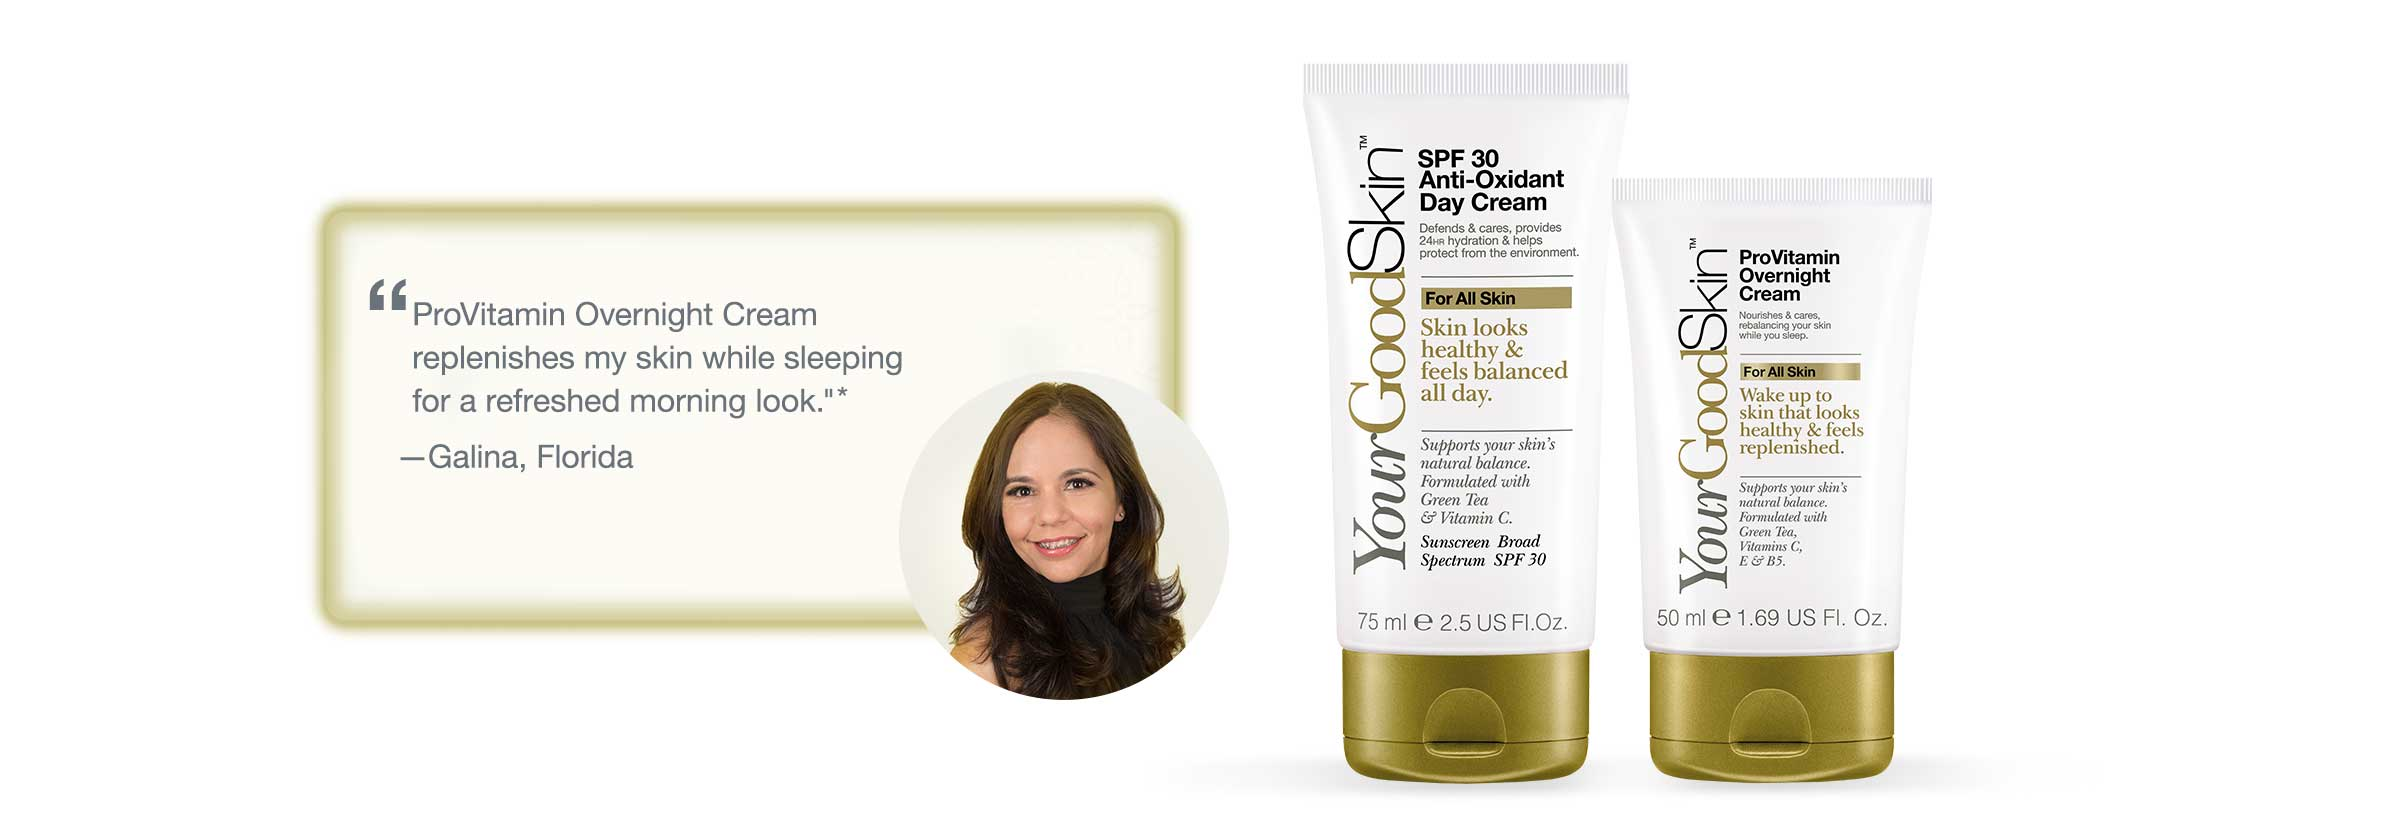 'ProVitamin Overnight Cream replenishes my skin while sleeping for a refreshed morning look.' - Galina, Florida